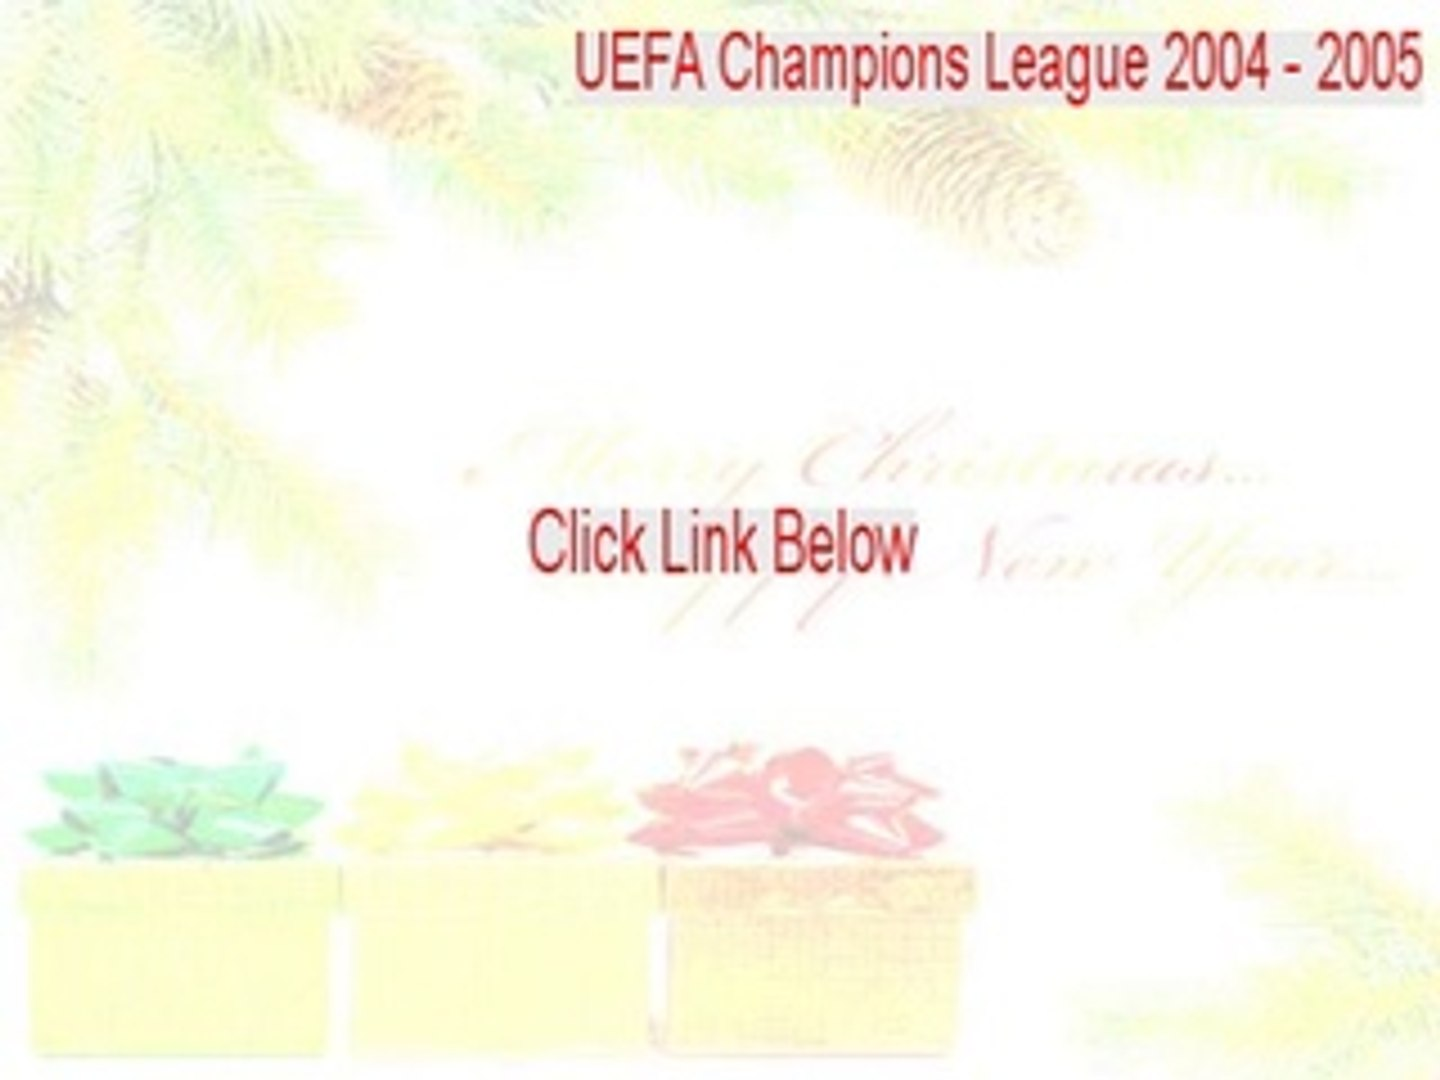 UEFA Champions League 2004 - 2005 Free Download (uefa champions league 2004 y 2005)